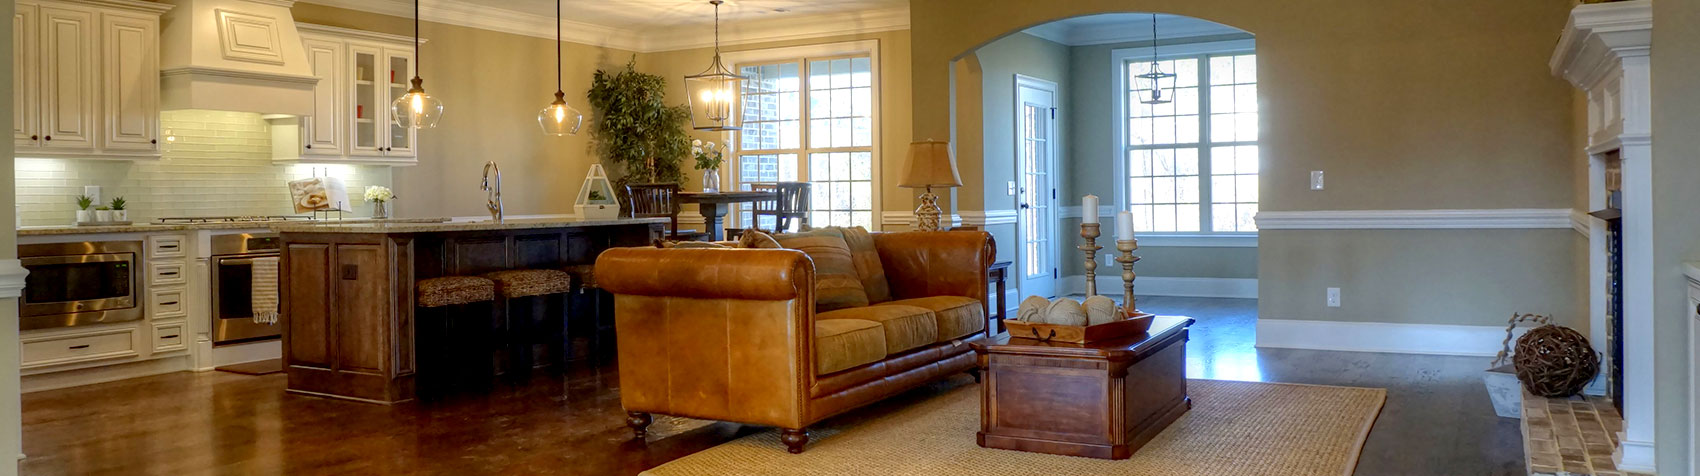 Home Slide Leather Couch | Stallings Ridge